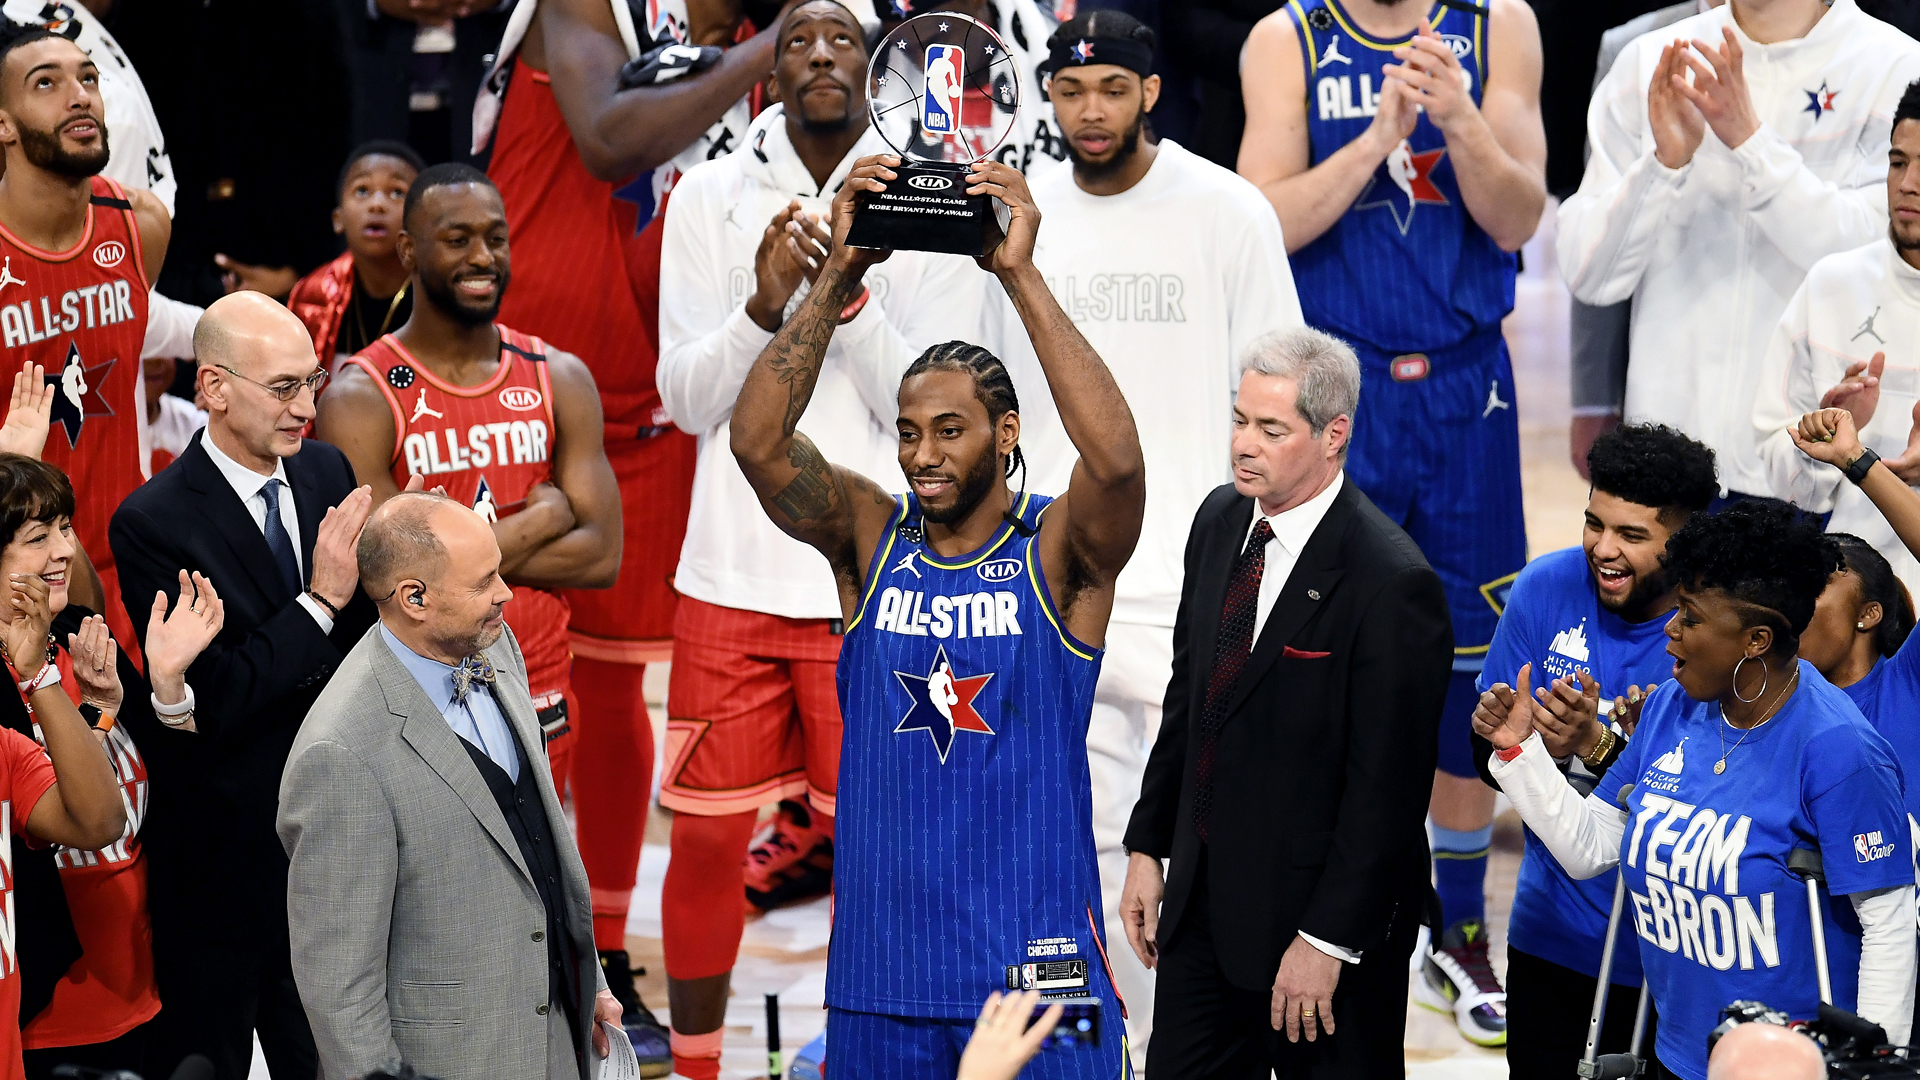 This one is for him – Leonard thanks Kobe Bryant after winning All-Star Game MVP